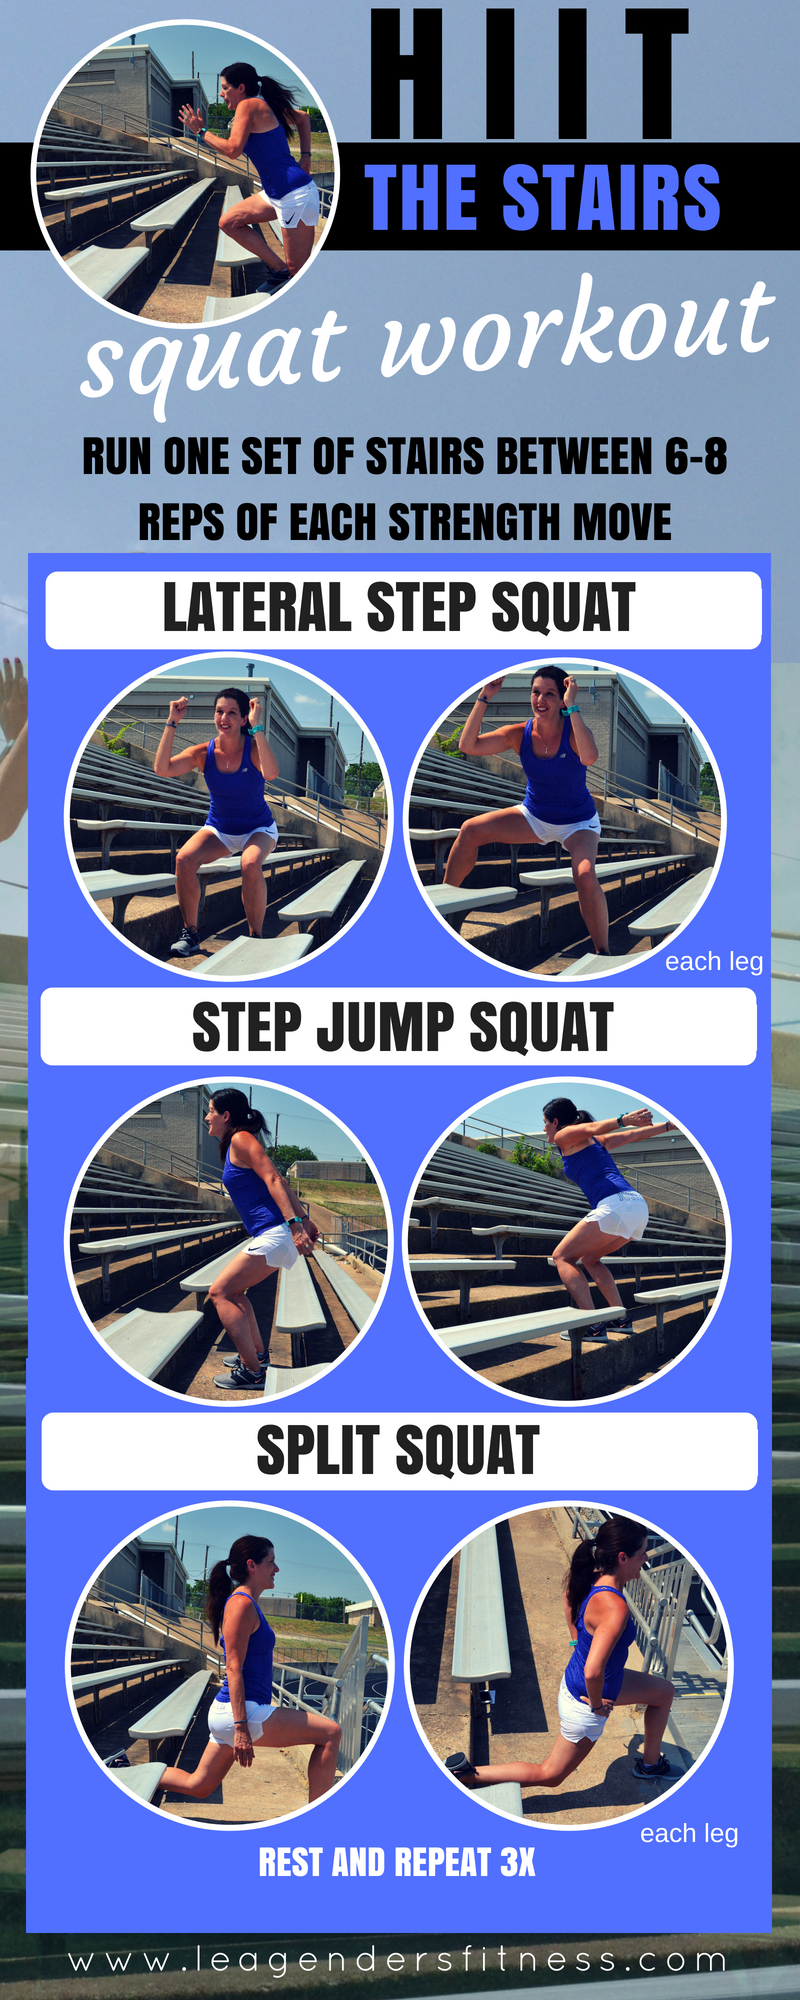 HIIT THE STAIRS SQUAT WORKOUT. SAVE TO YOUR FAVORITE PINTEREST BOARD FOR LATER